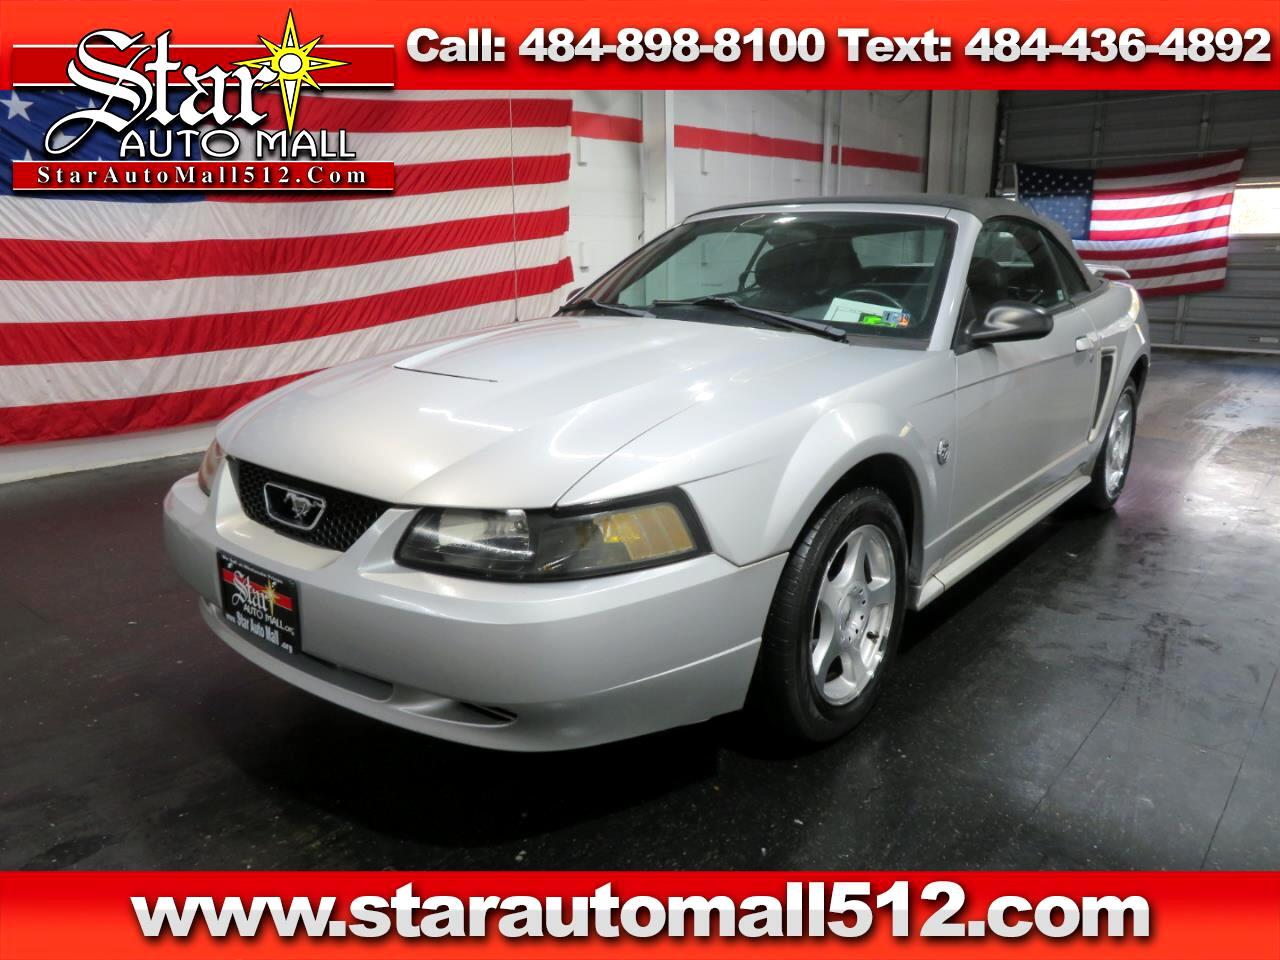 2004 Ford Mustang 50th Anniversary